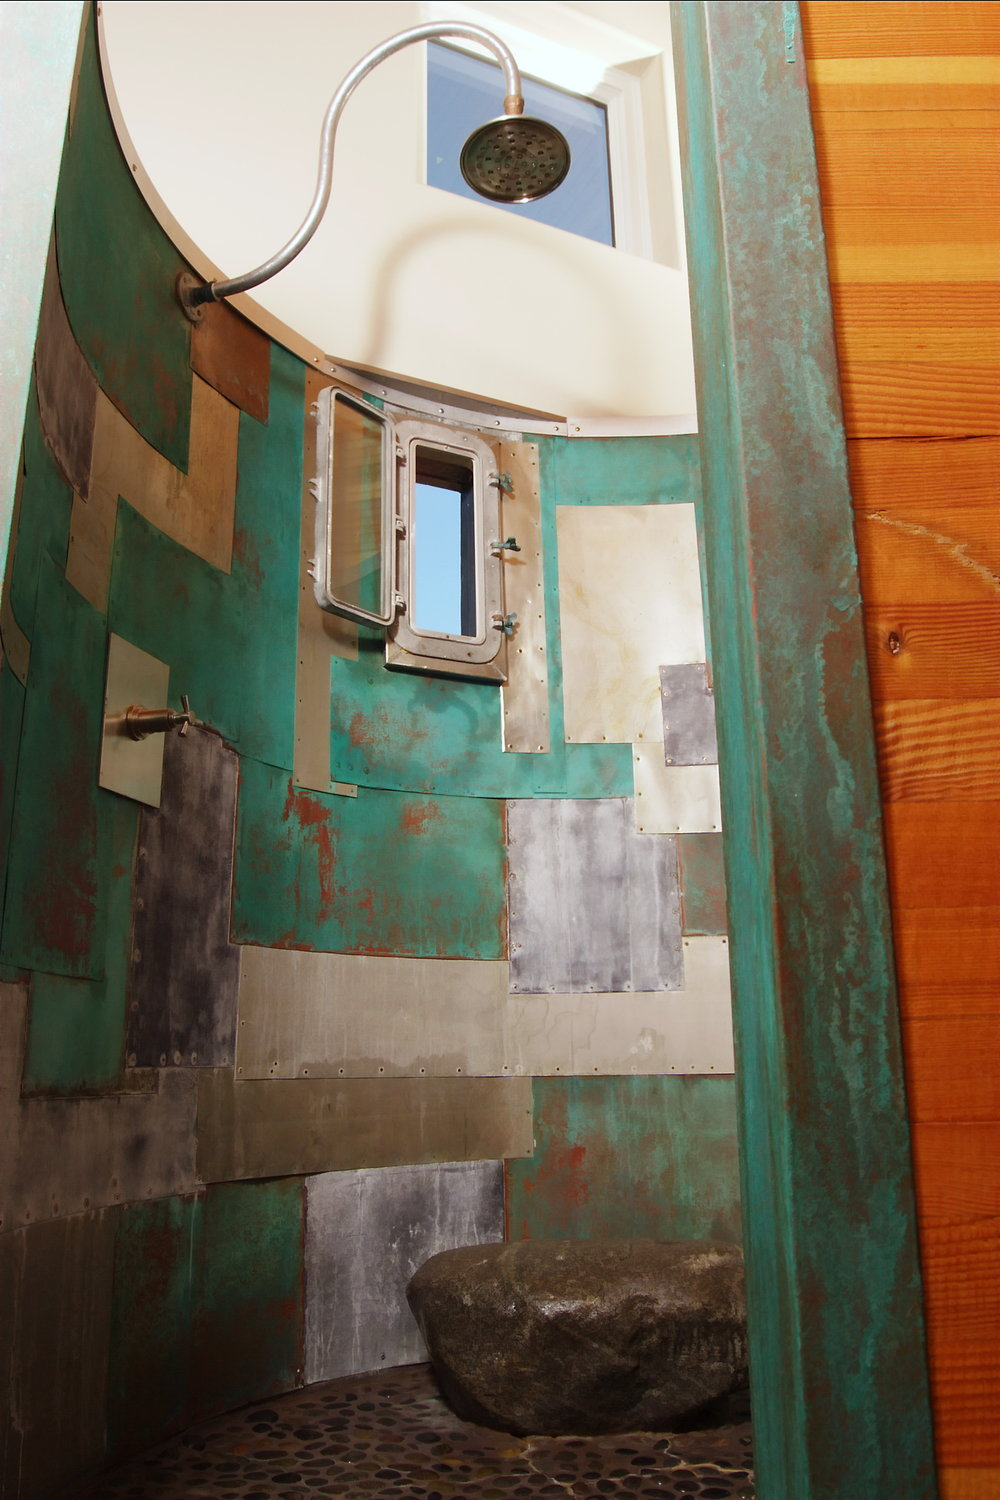 oxidized metal patchwork shower with porthole window to outdoors seating.jpg